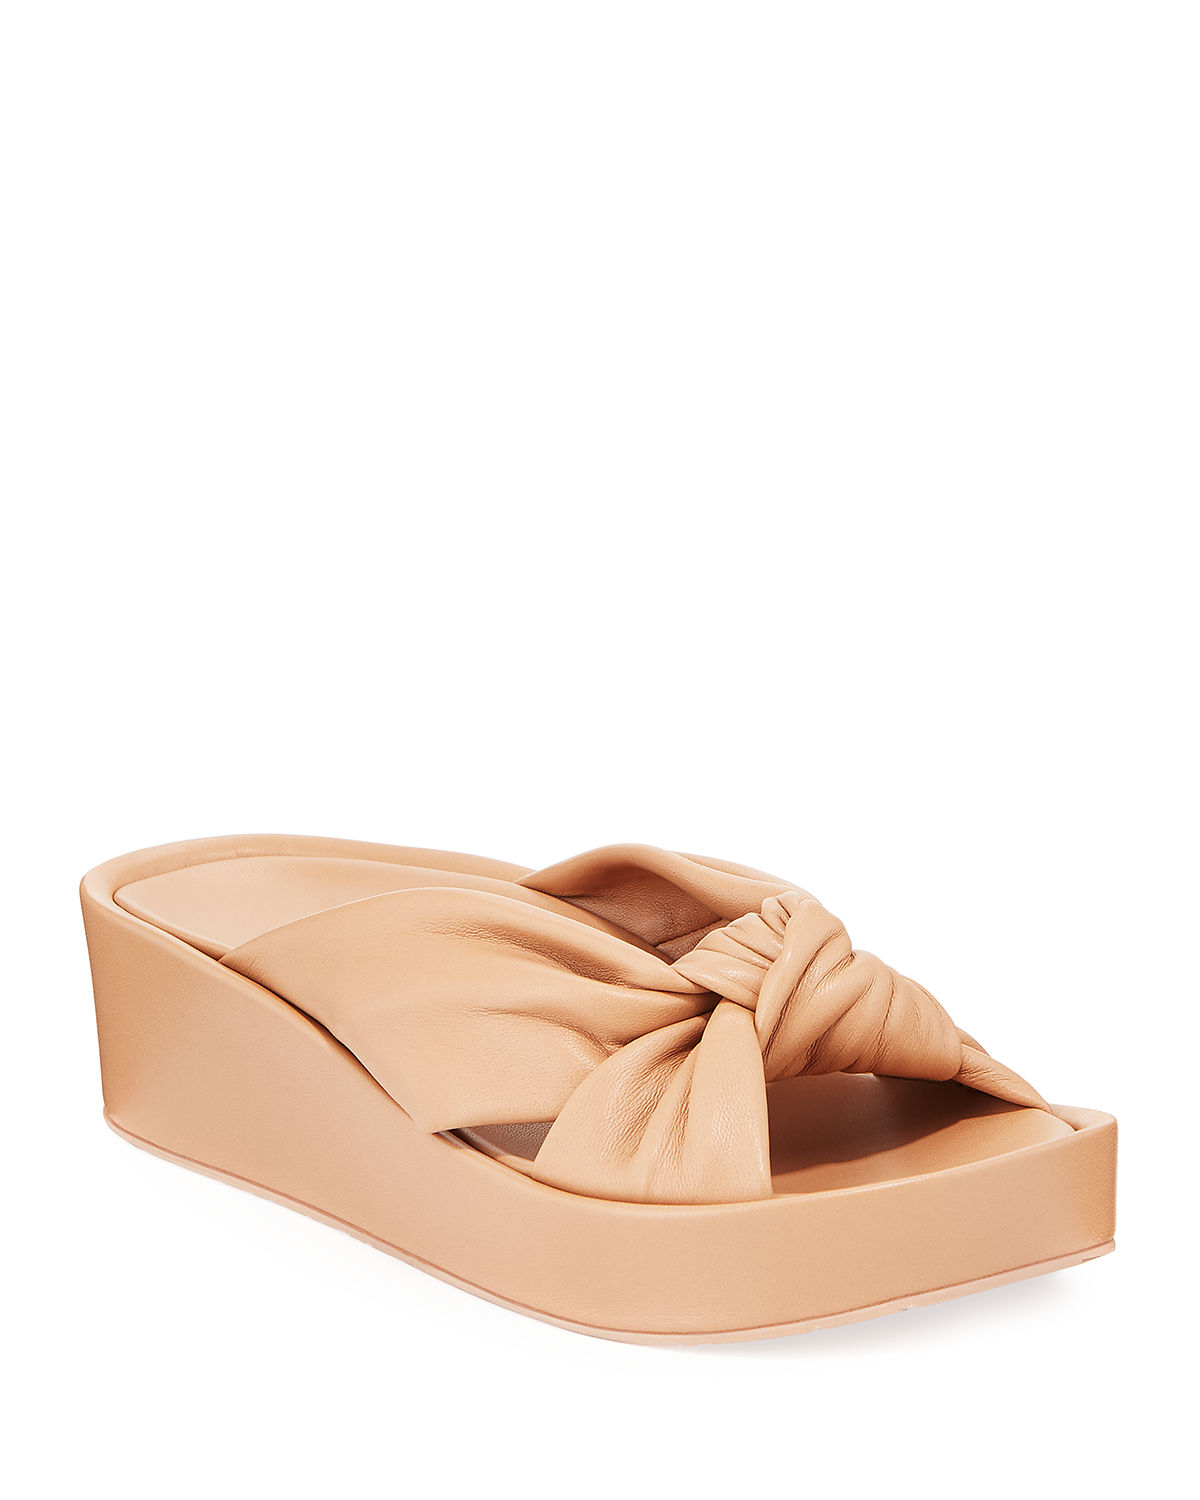 Lany Knotted-Leather Flatform Sandals